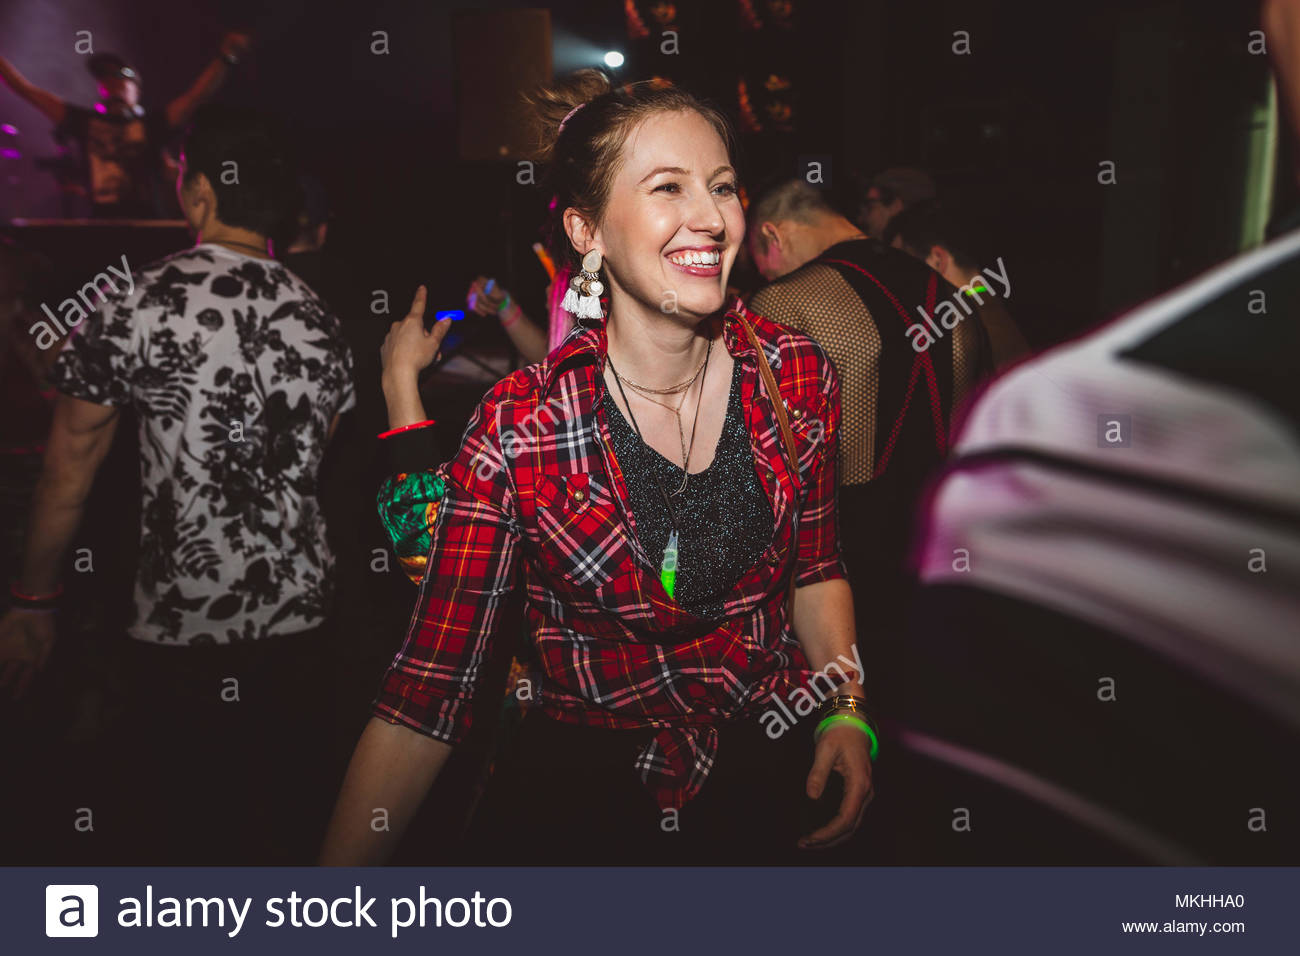 Confident, happy female millennial partying in nightclub - Stock Image